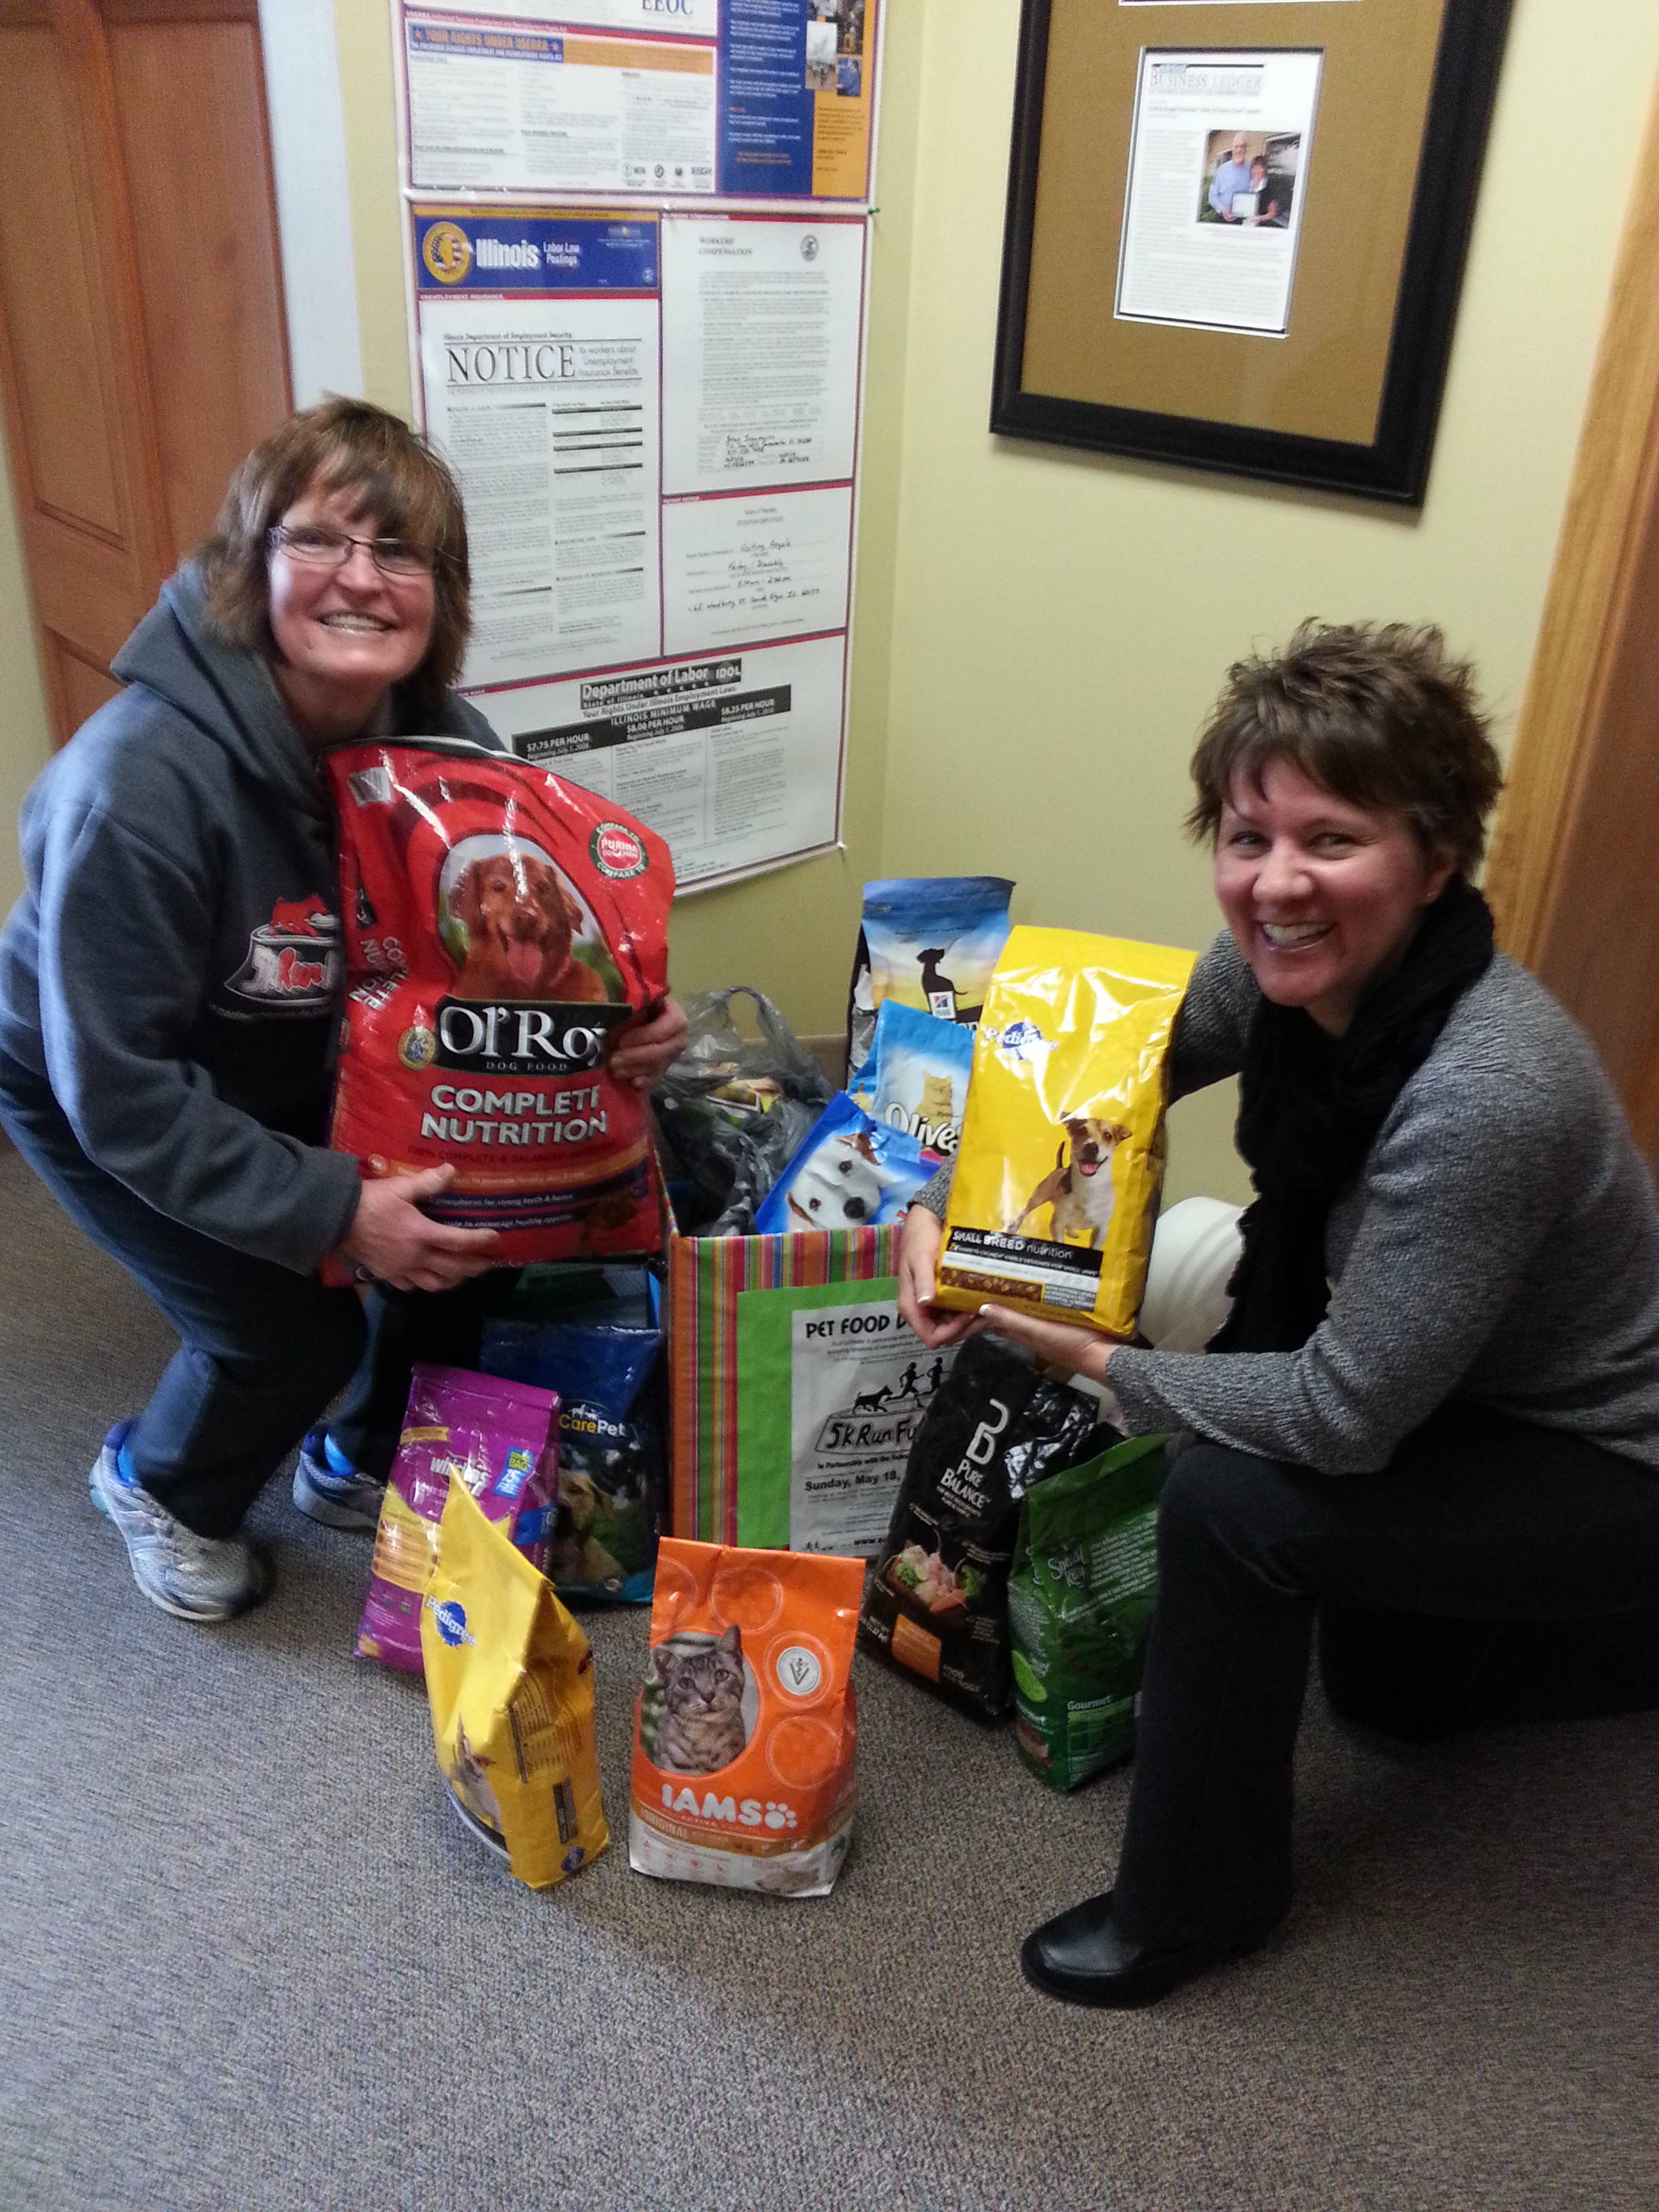 Sara Johnson, a caregiver for Visiting Angels and representative for RunFurShelter, along with Arlene Petersen, owner of Visiting Angels, show off some of the pet food collected.